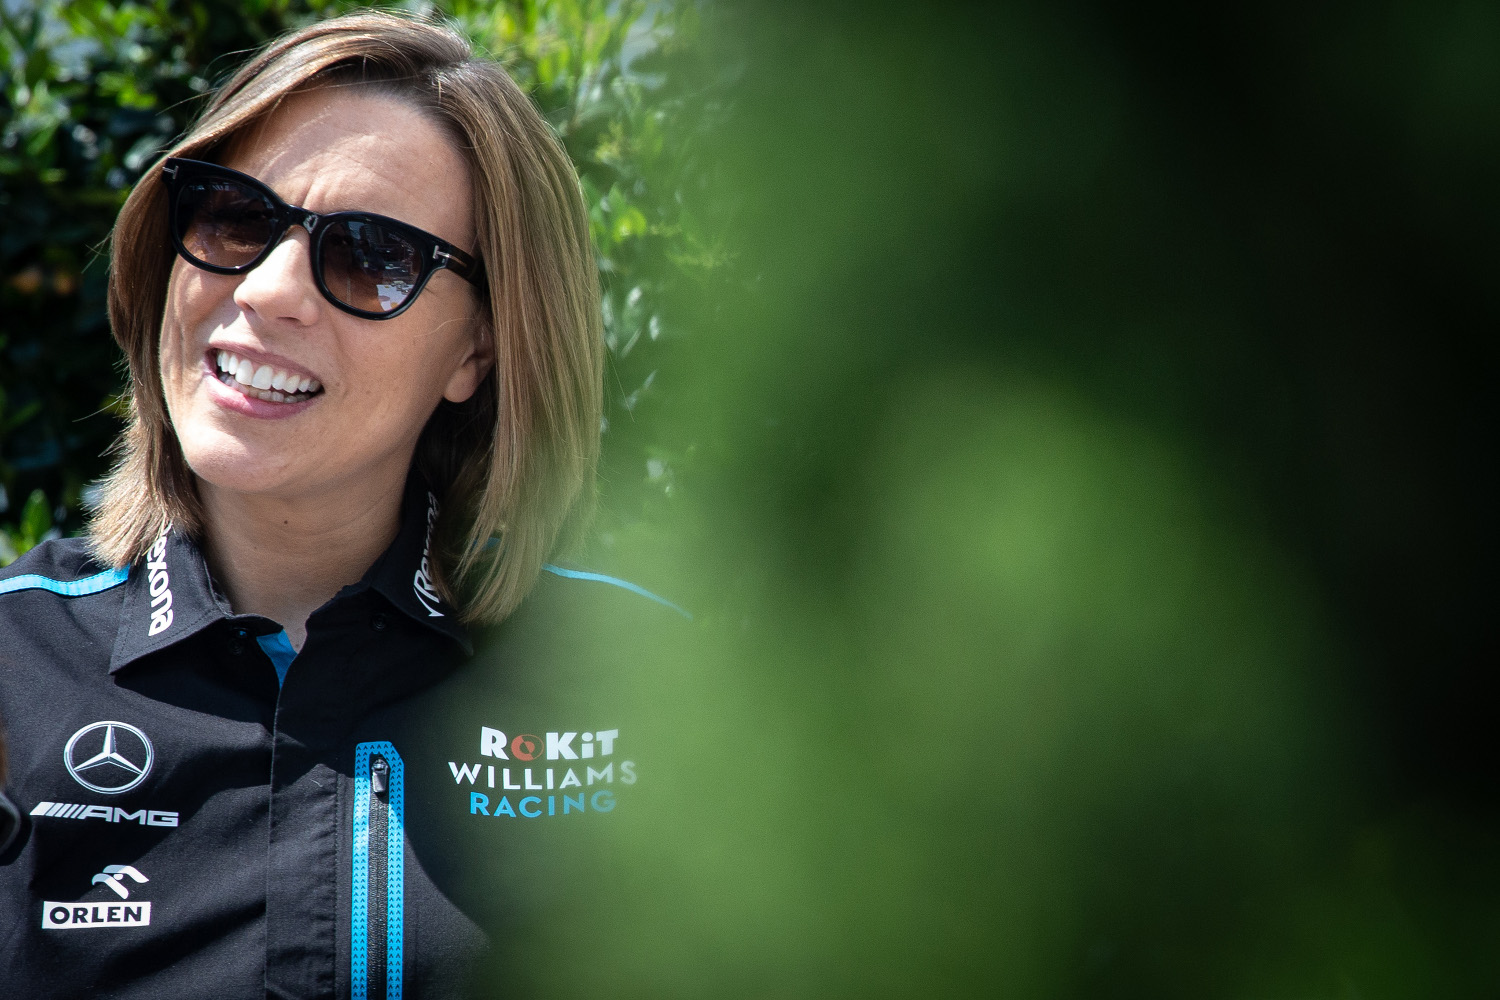 Claire Williams - ROKiT Williams Racing